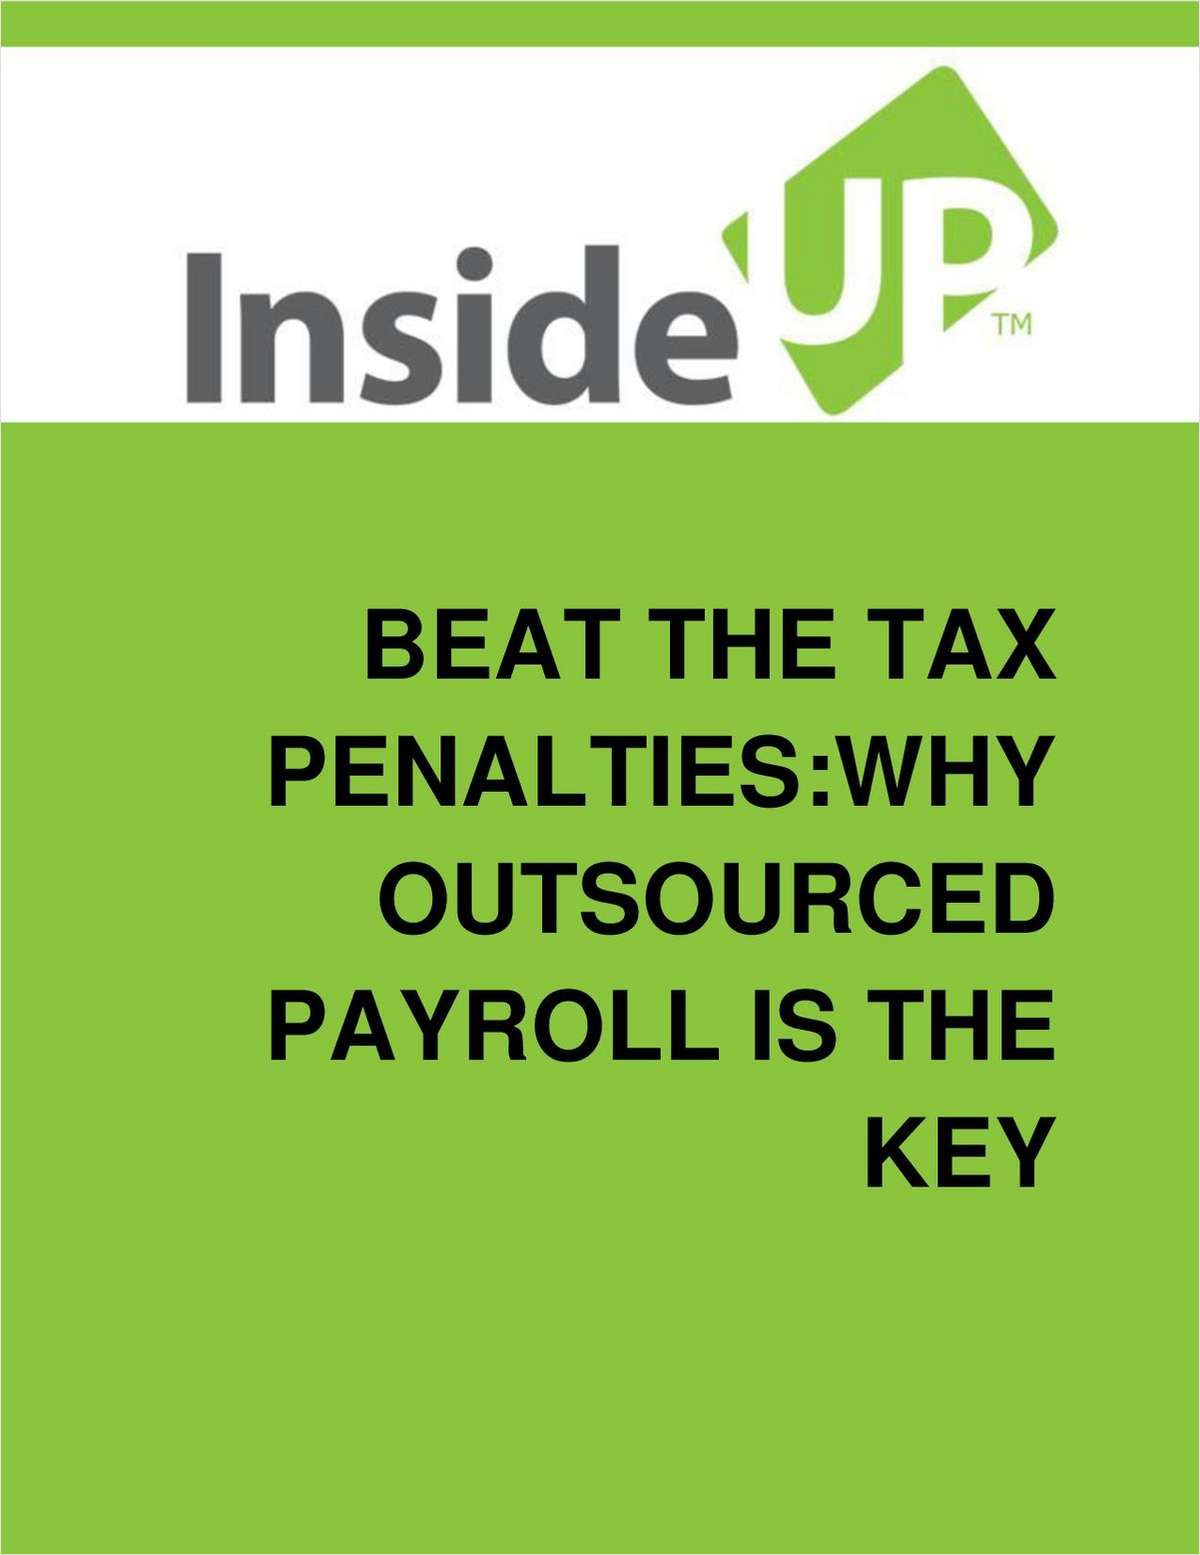 How Outsourcing Your Business Payroll Can Keep You Compliant And Protect Against Fines & Penalties